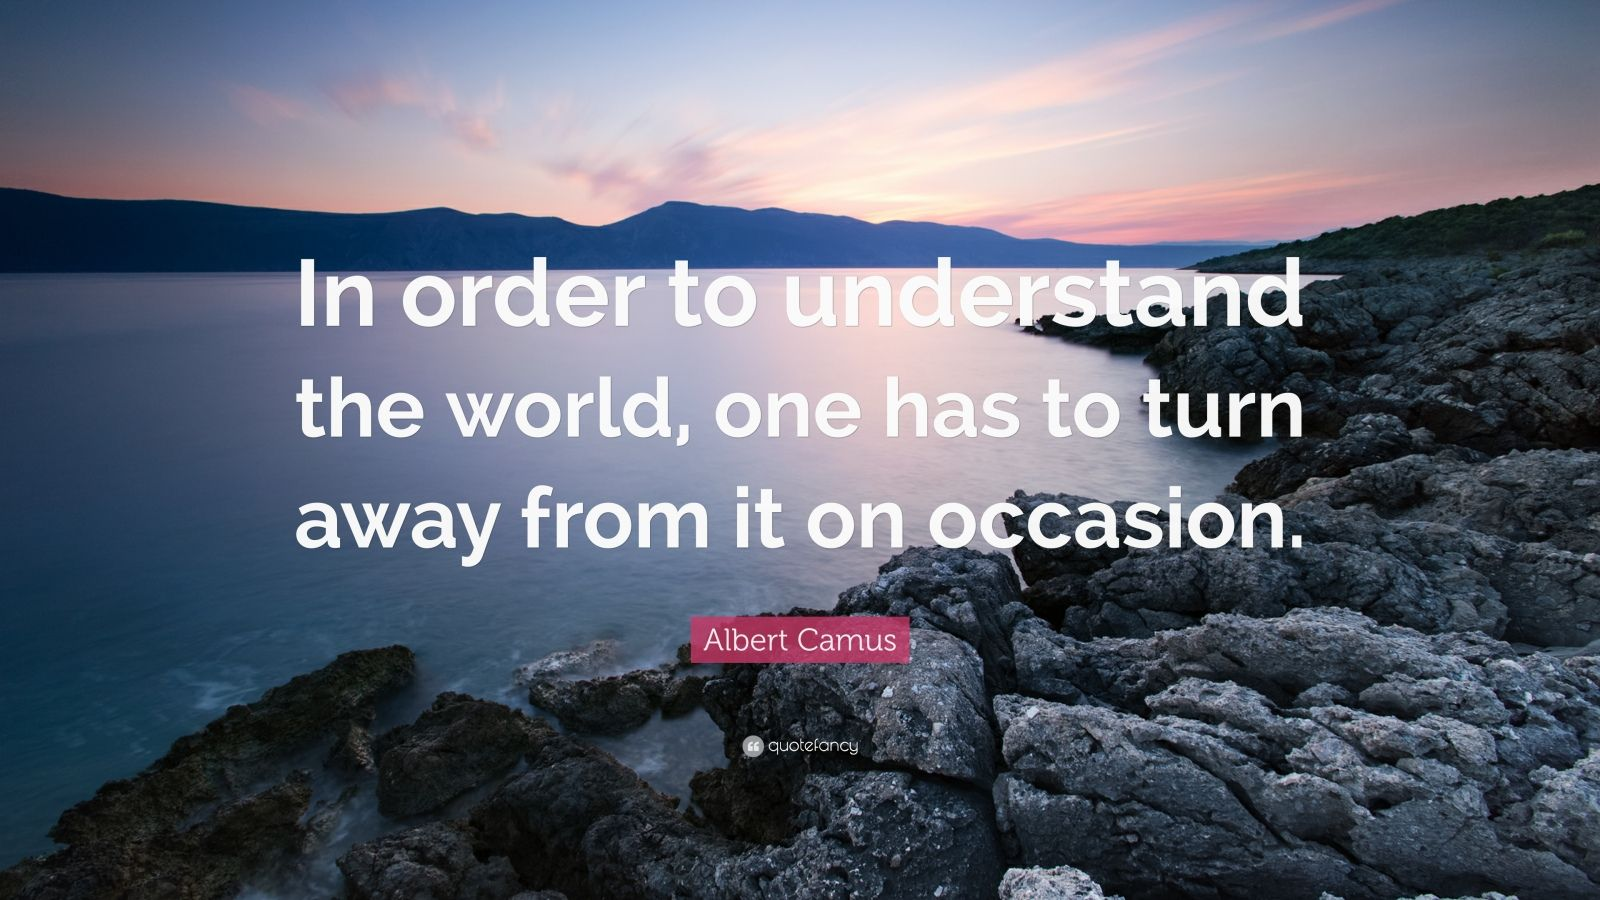 """Albert Camus Quote: """"In order to understand the world, one has to turn away from it on occasion."""""""